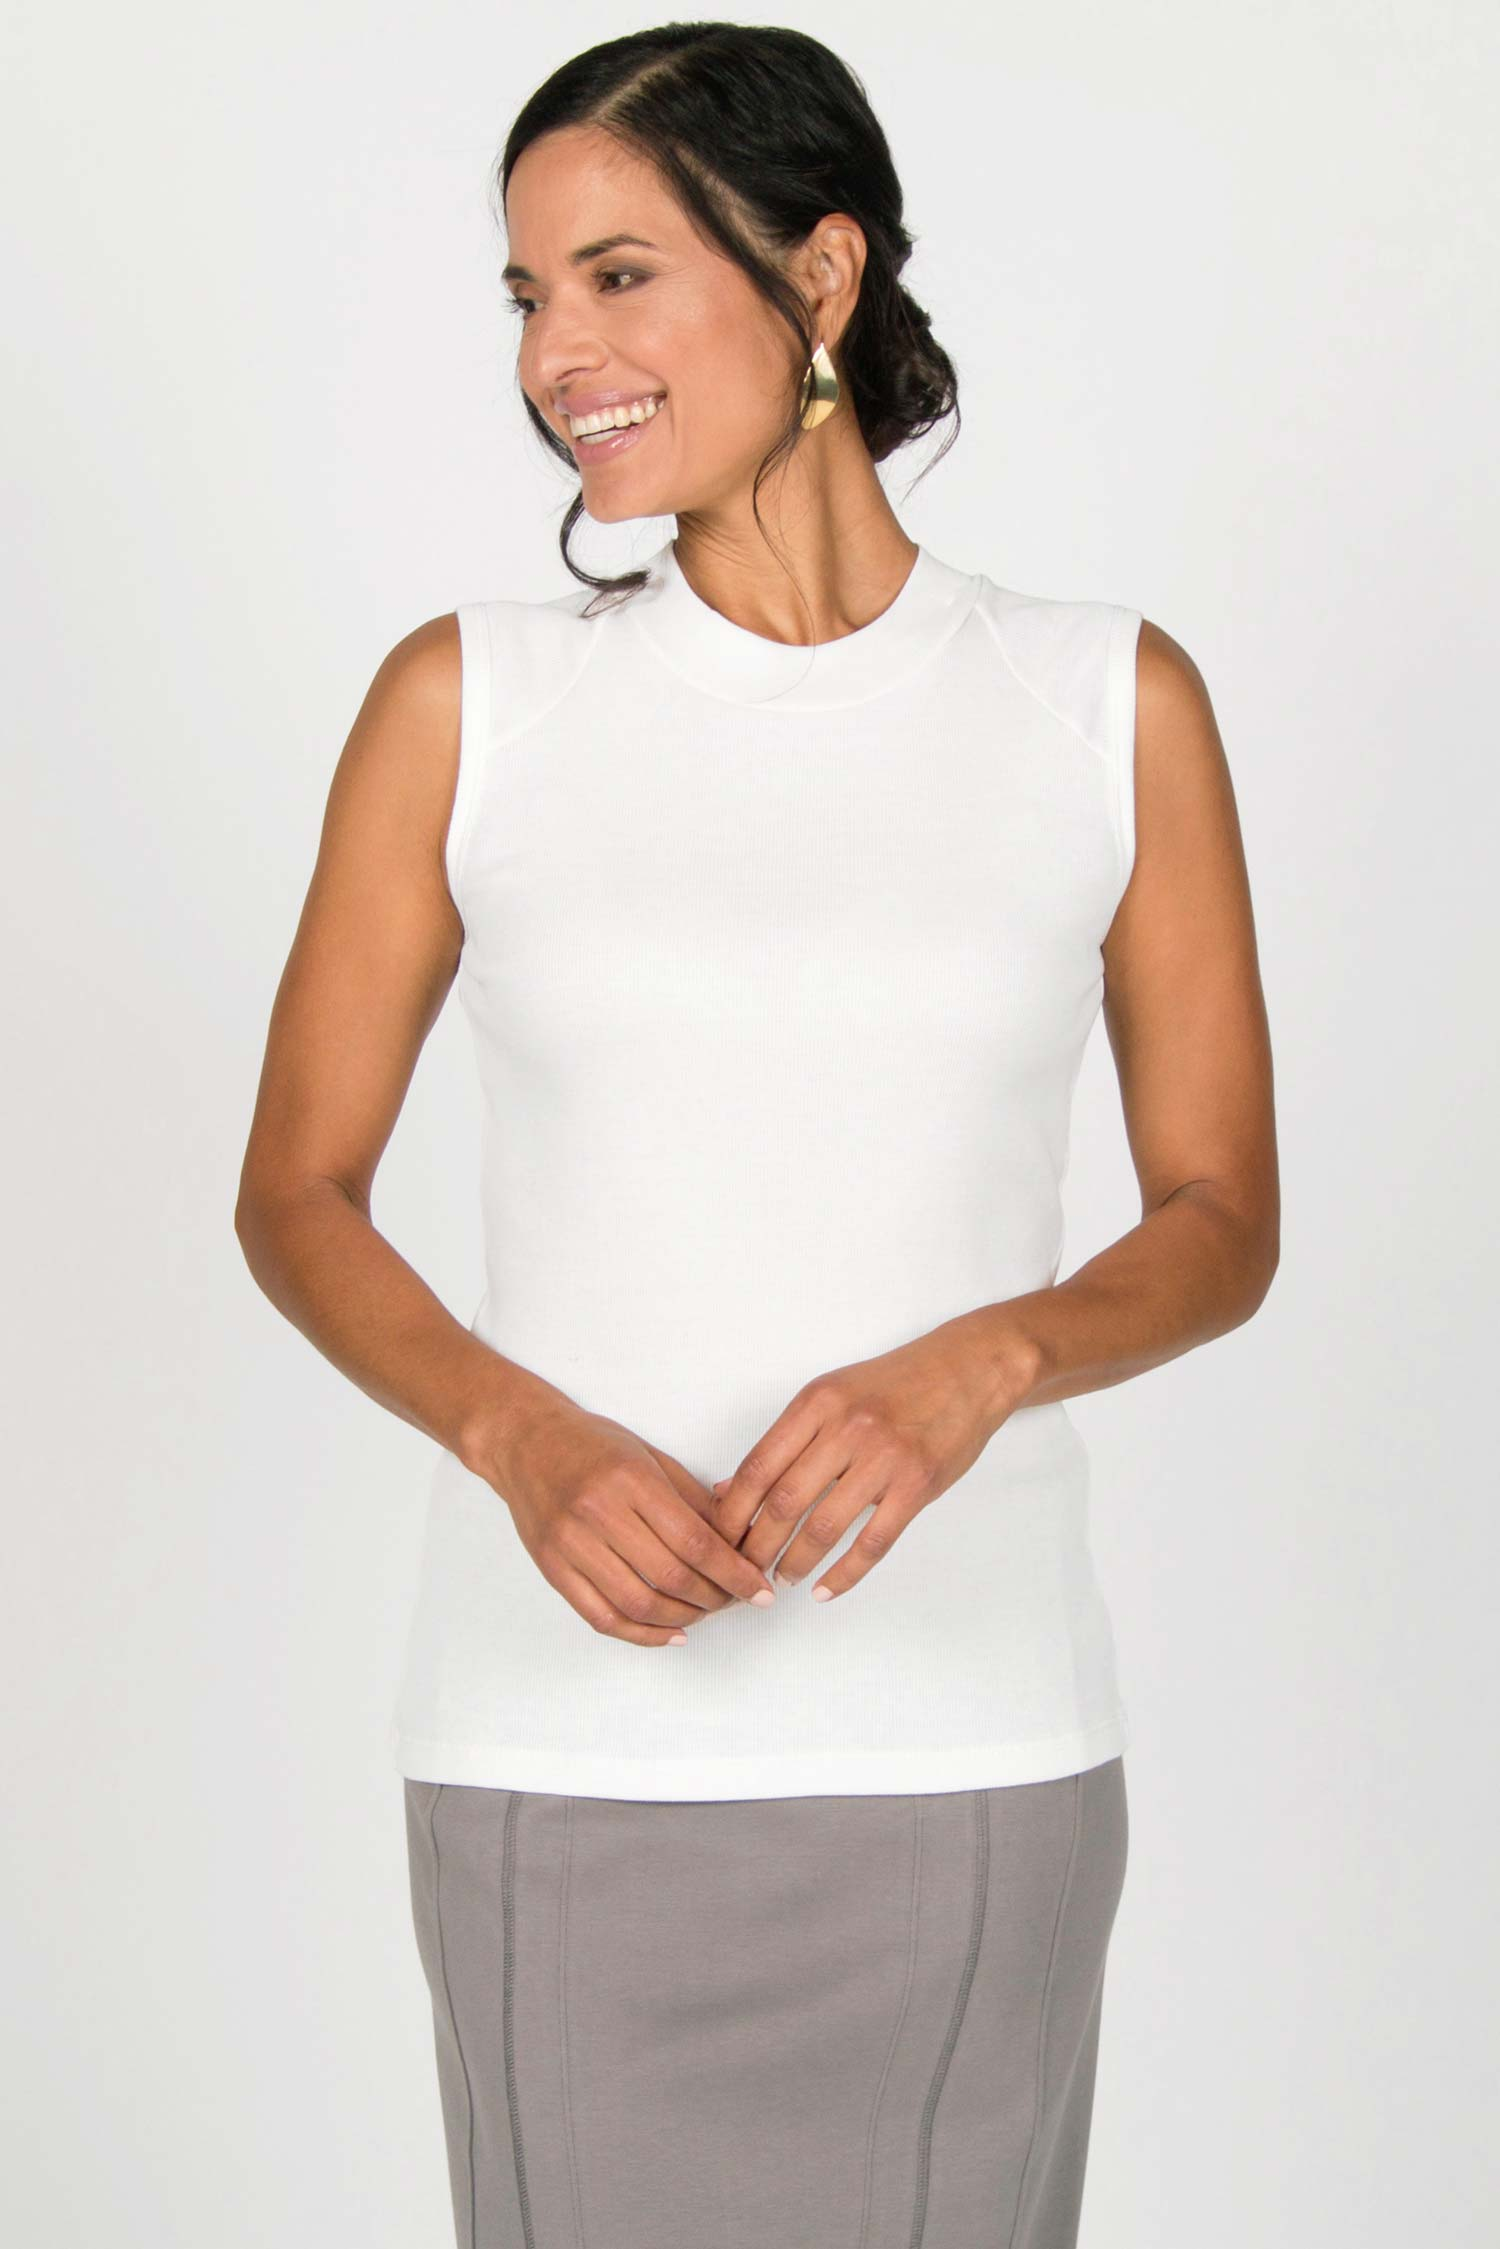 Womens Mock Neck Tank Top | Organic Cotton Clothing for Women